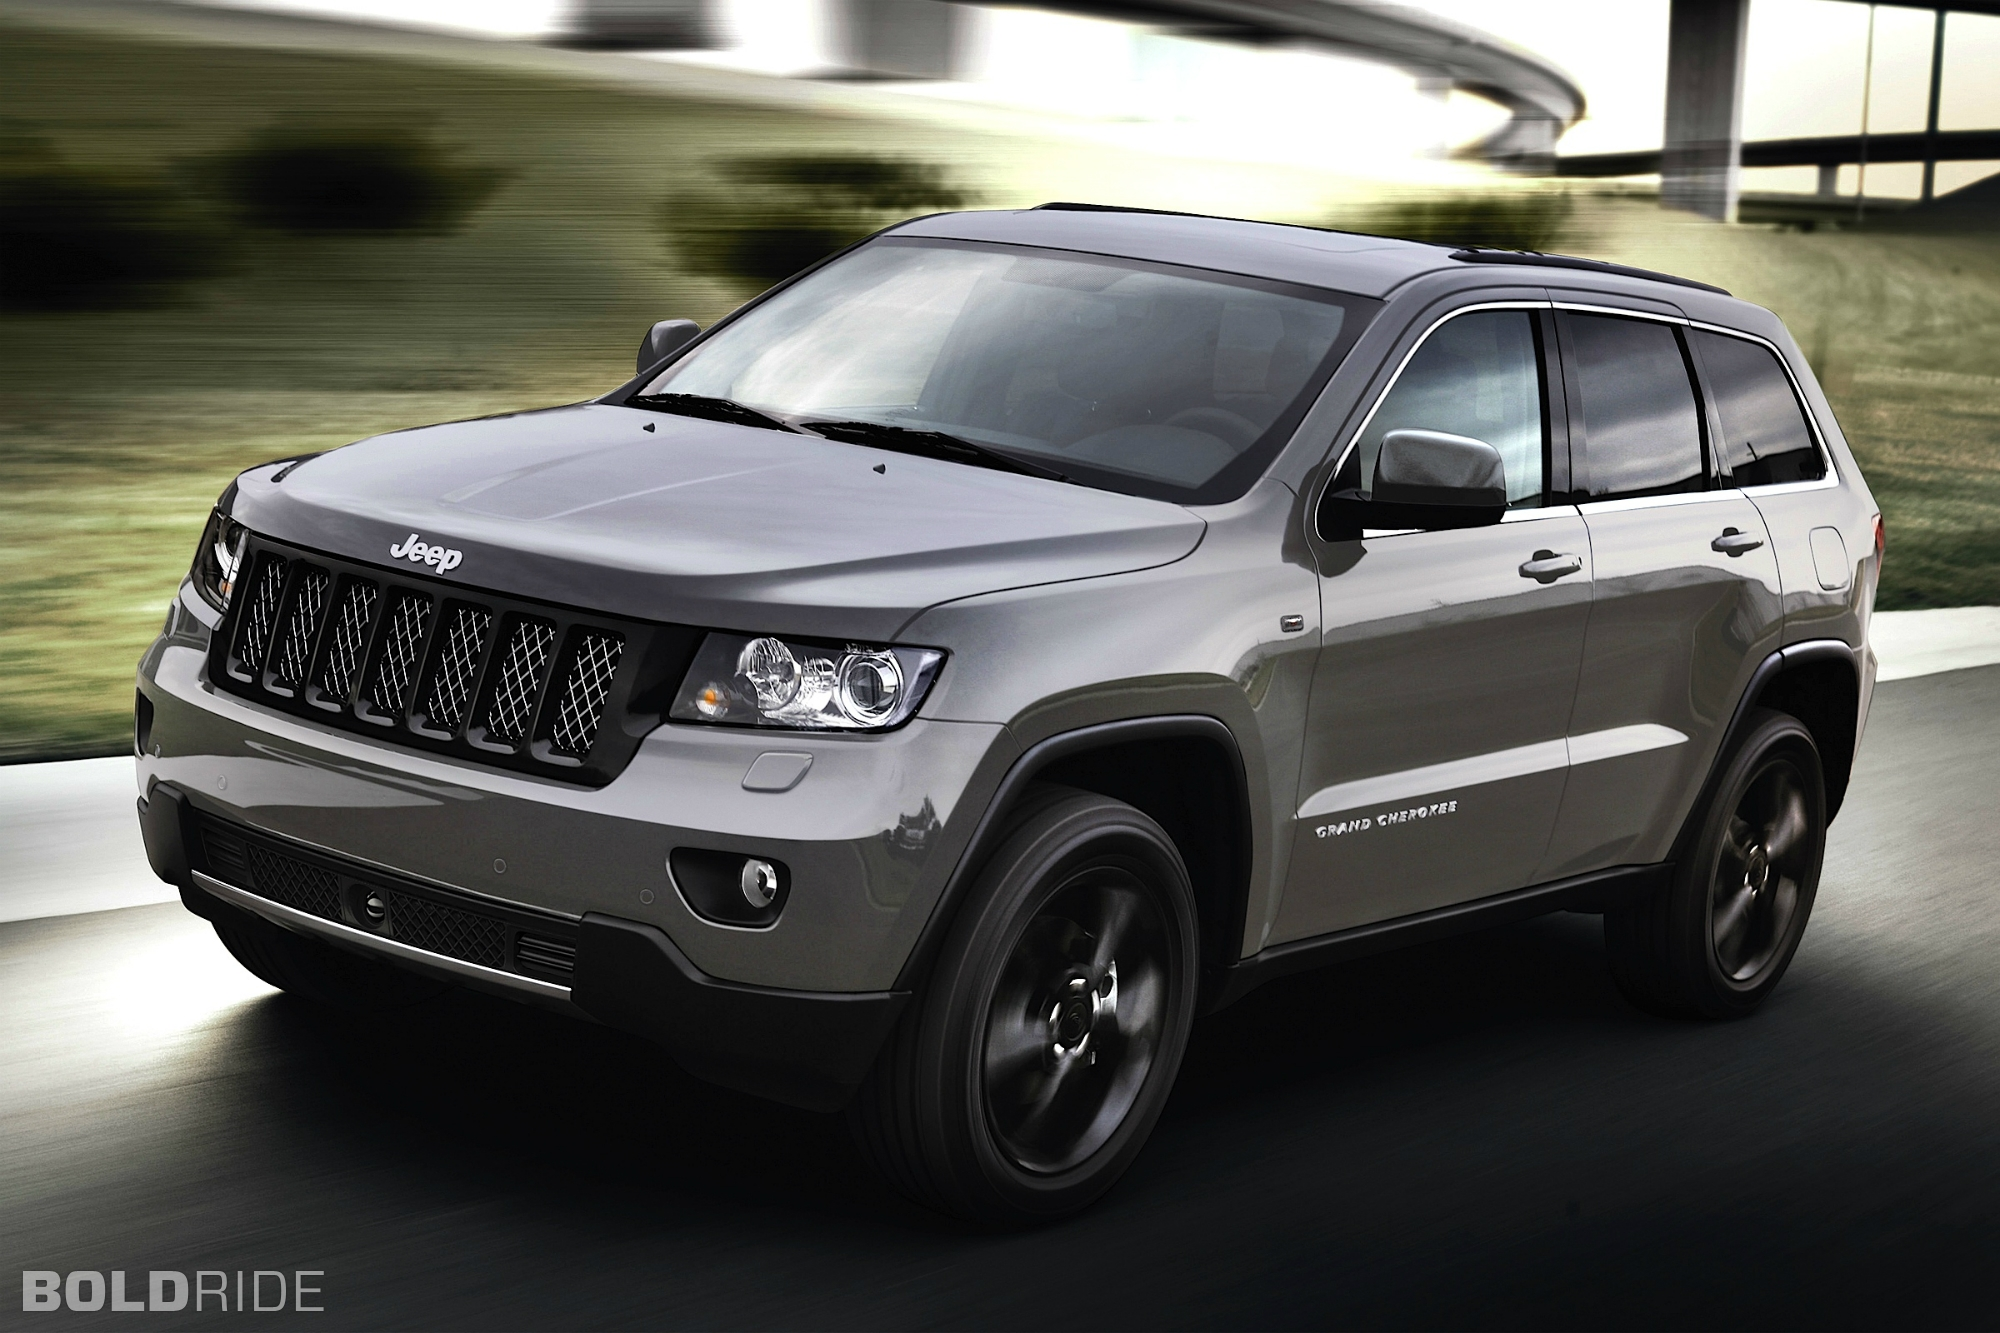 2012 JEEP GRAND CHEROKEE   Image #20